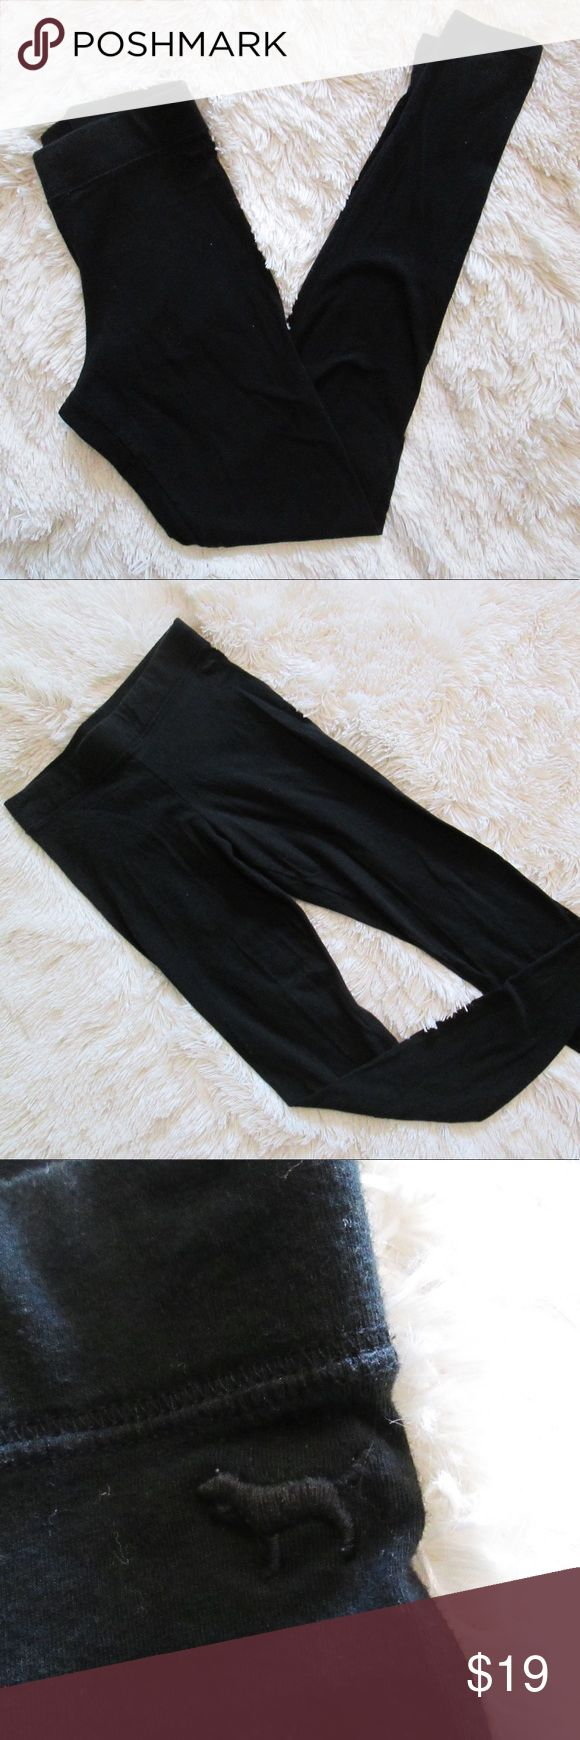 Pink Victoria's Secret dorm black cotton leggings These comfortable and basic leggings are in excellent condition! No flaws and perfect for warming up for the Fall weather. Fits true to size at XS. 💕Bundle with just one other item for 15% off! PINK Victoria's Secret Pants Leggings